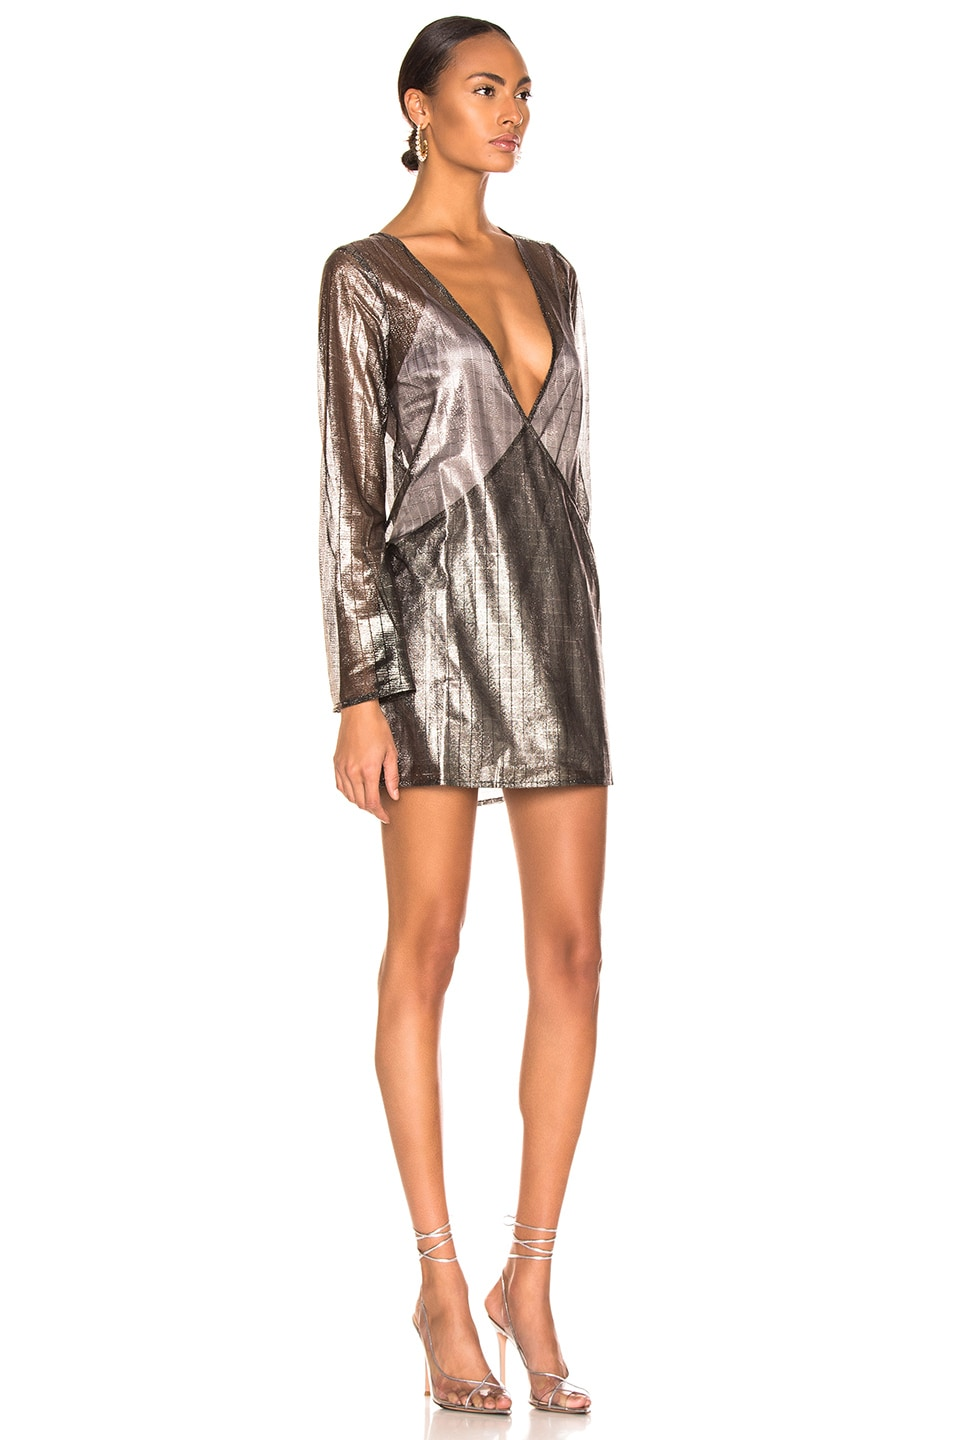 Image 2 of Atoir for FWRD One Of These Nights Dress in Metallic Pewter